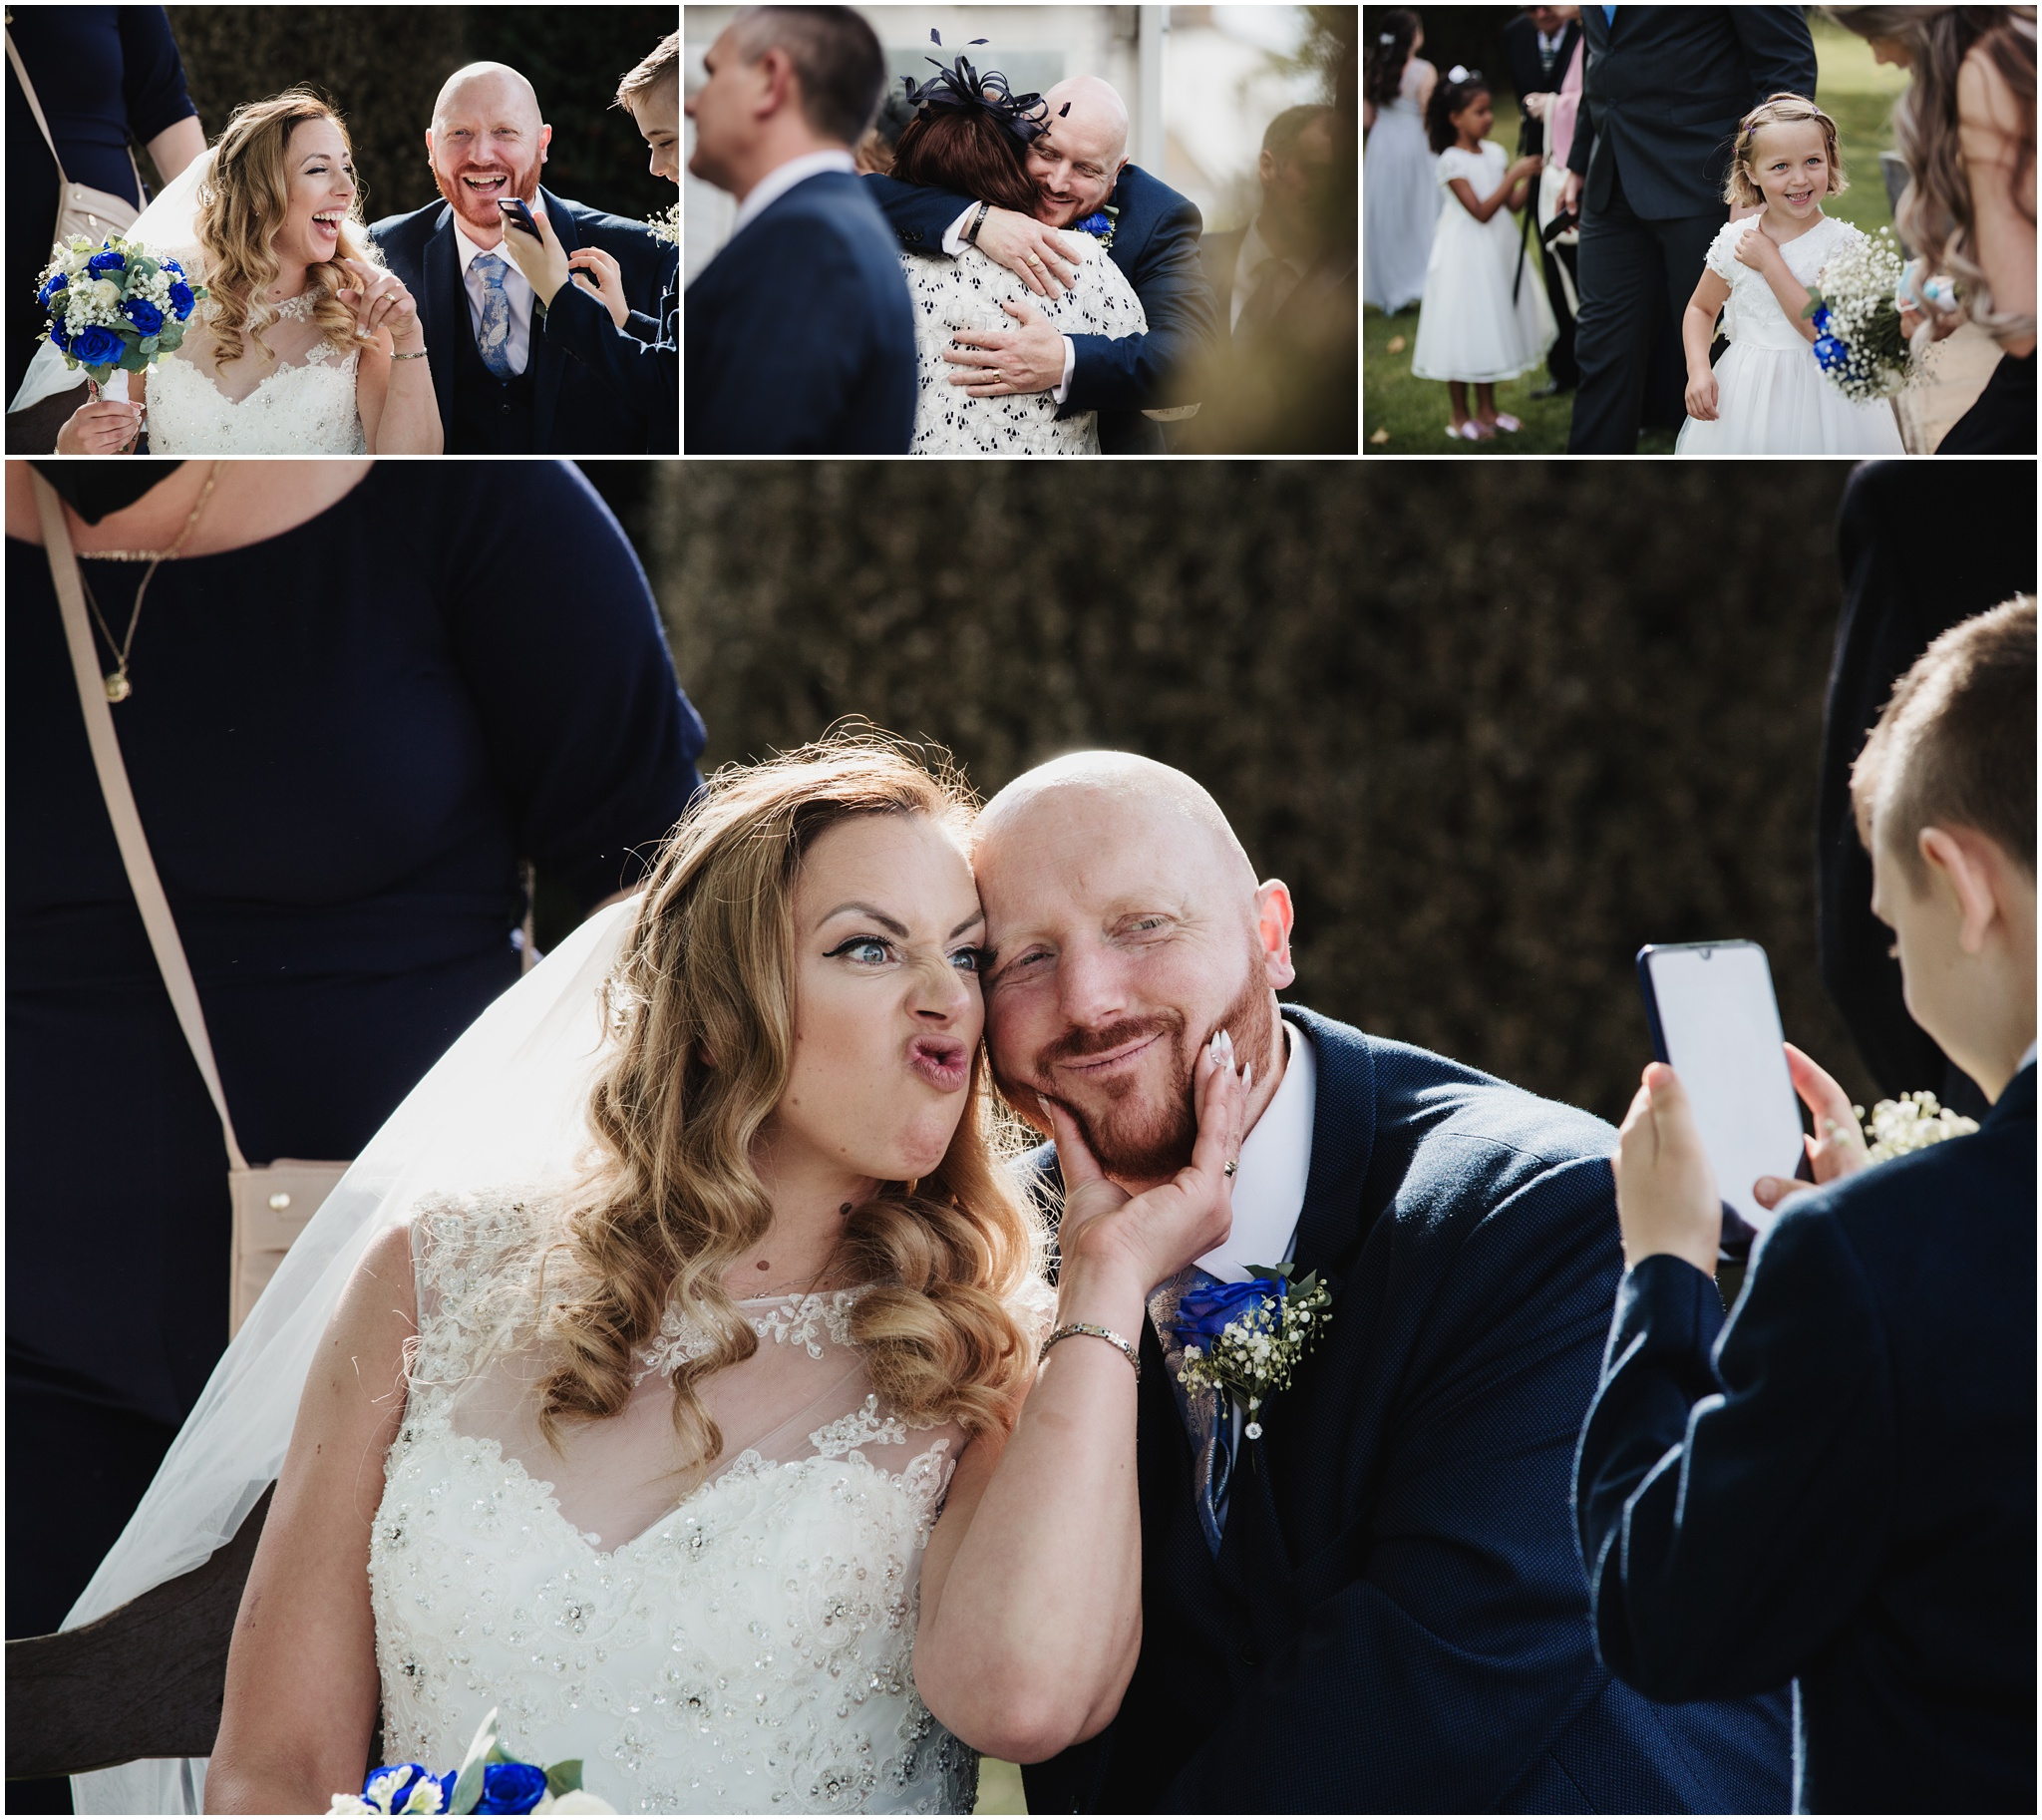 The Rochford Hotel wedding photography - The bride and groom have fun in the garden